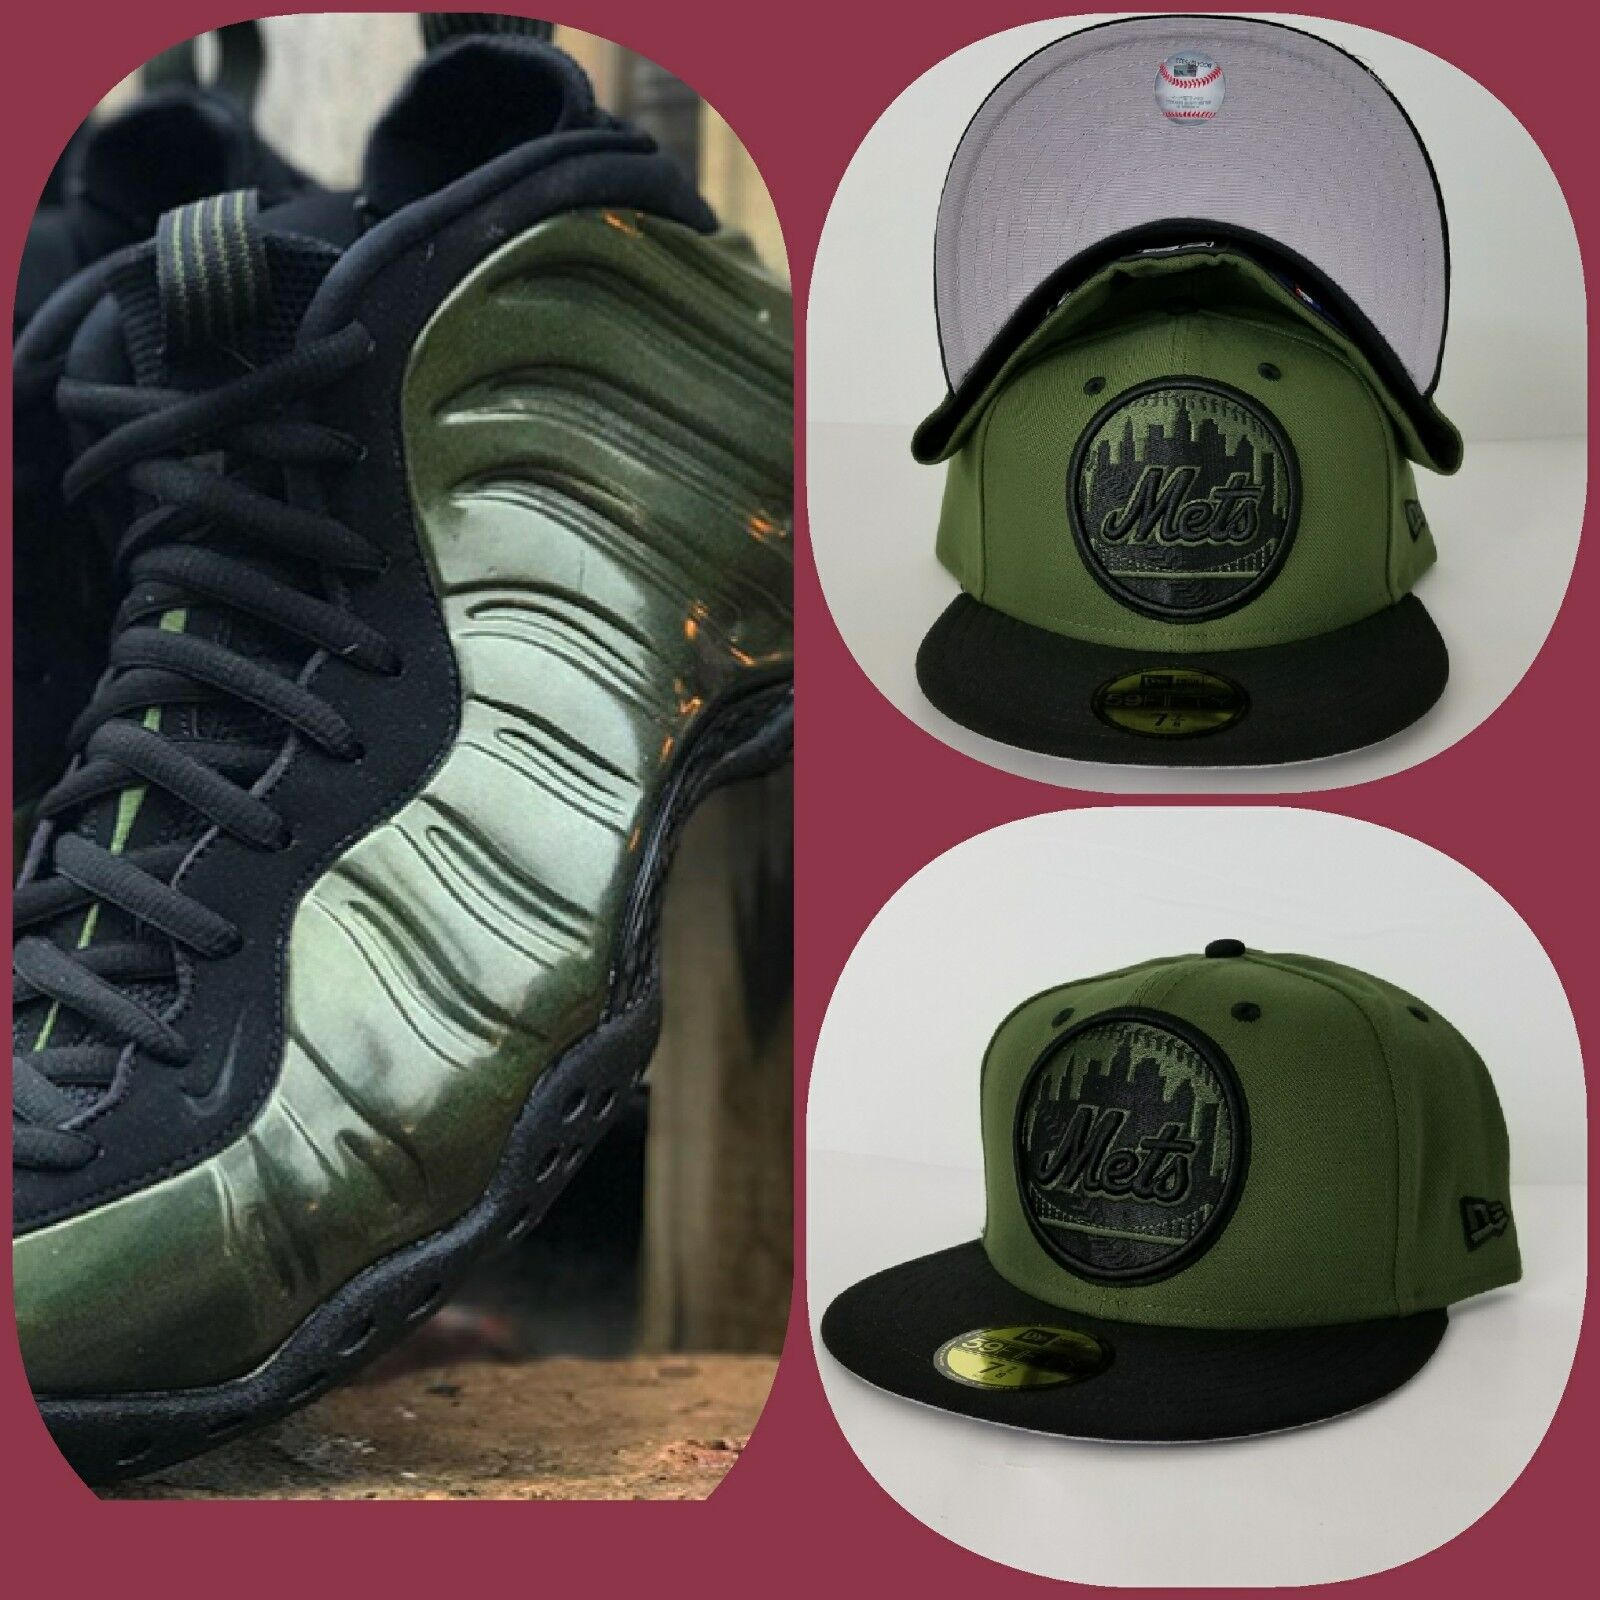 online store efb31 44c97 New Era NY Mets 59Fifty Fitted hat for Nike Foamposite One Legion Green  Foams